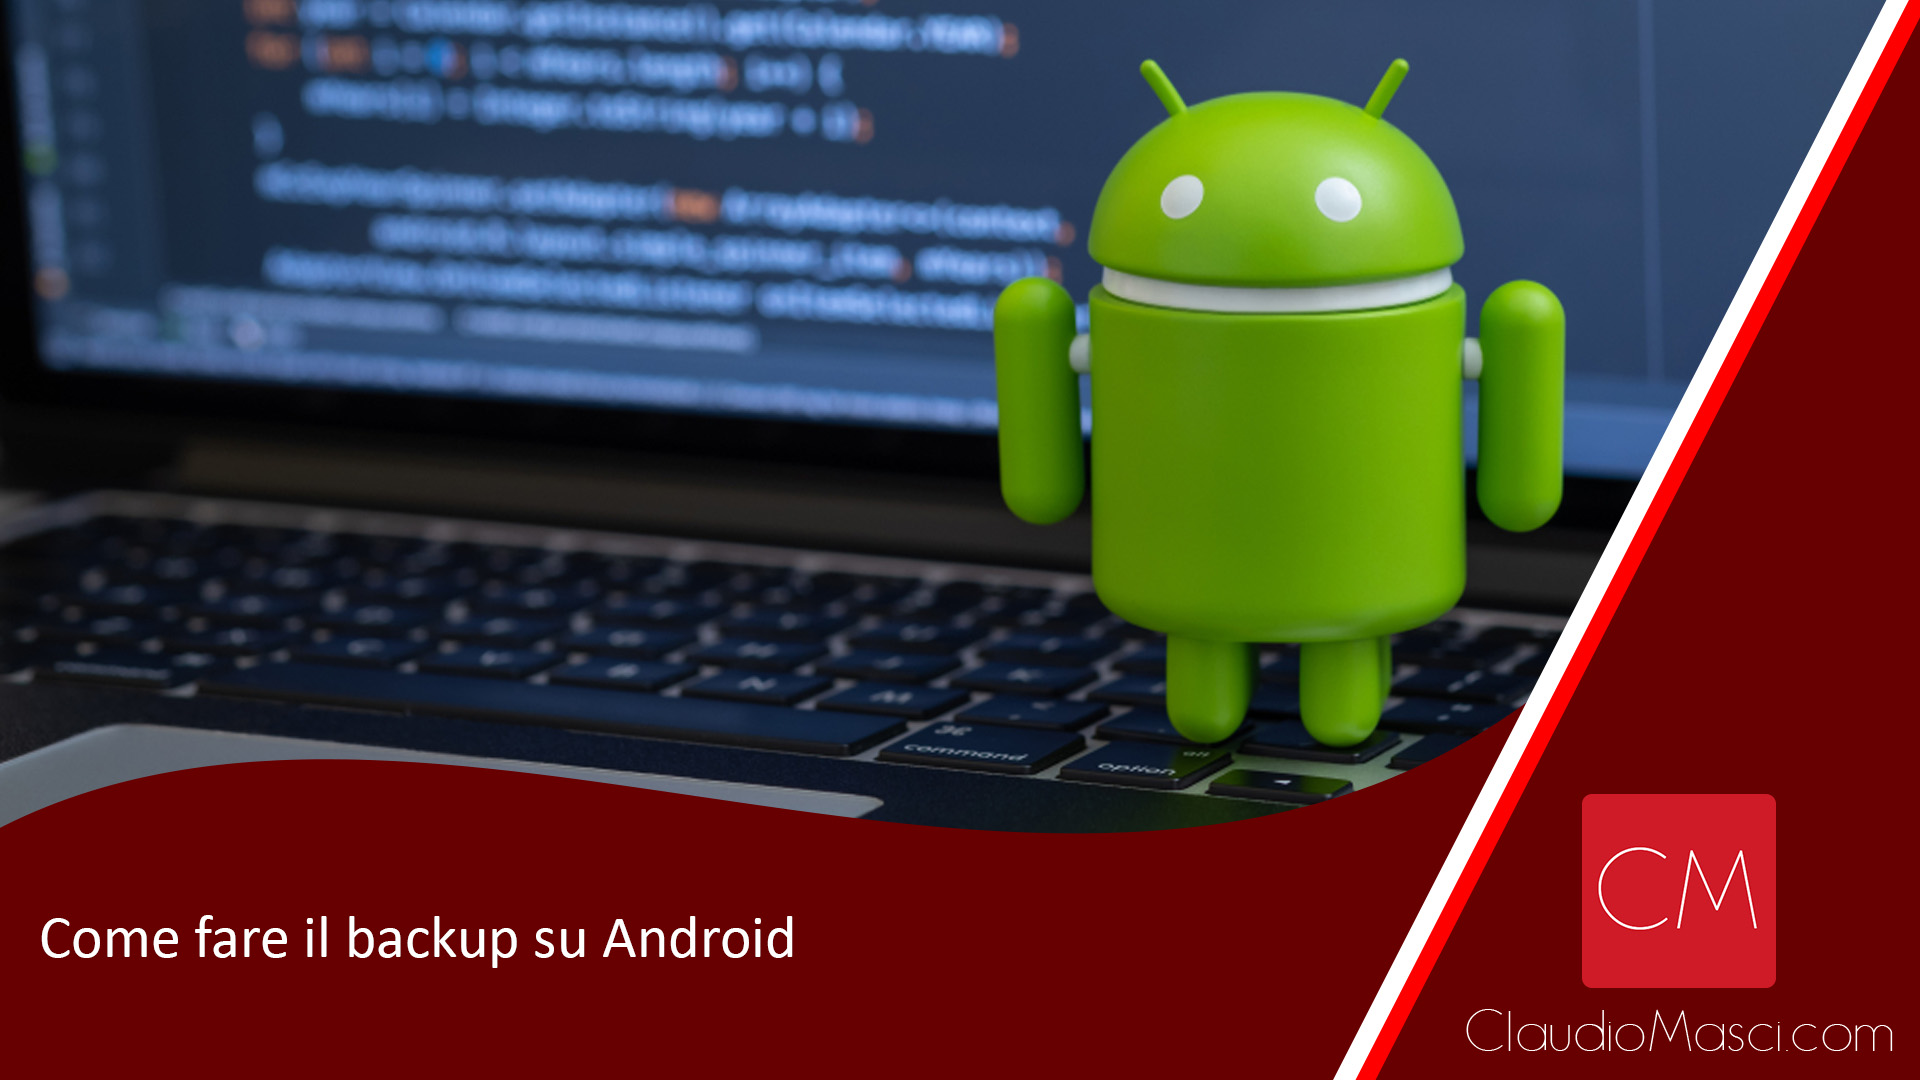 Come fare il backup su Android